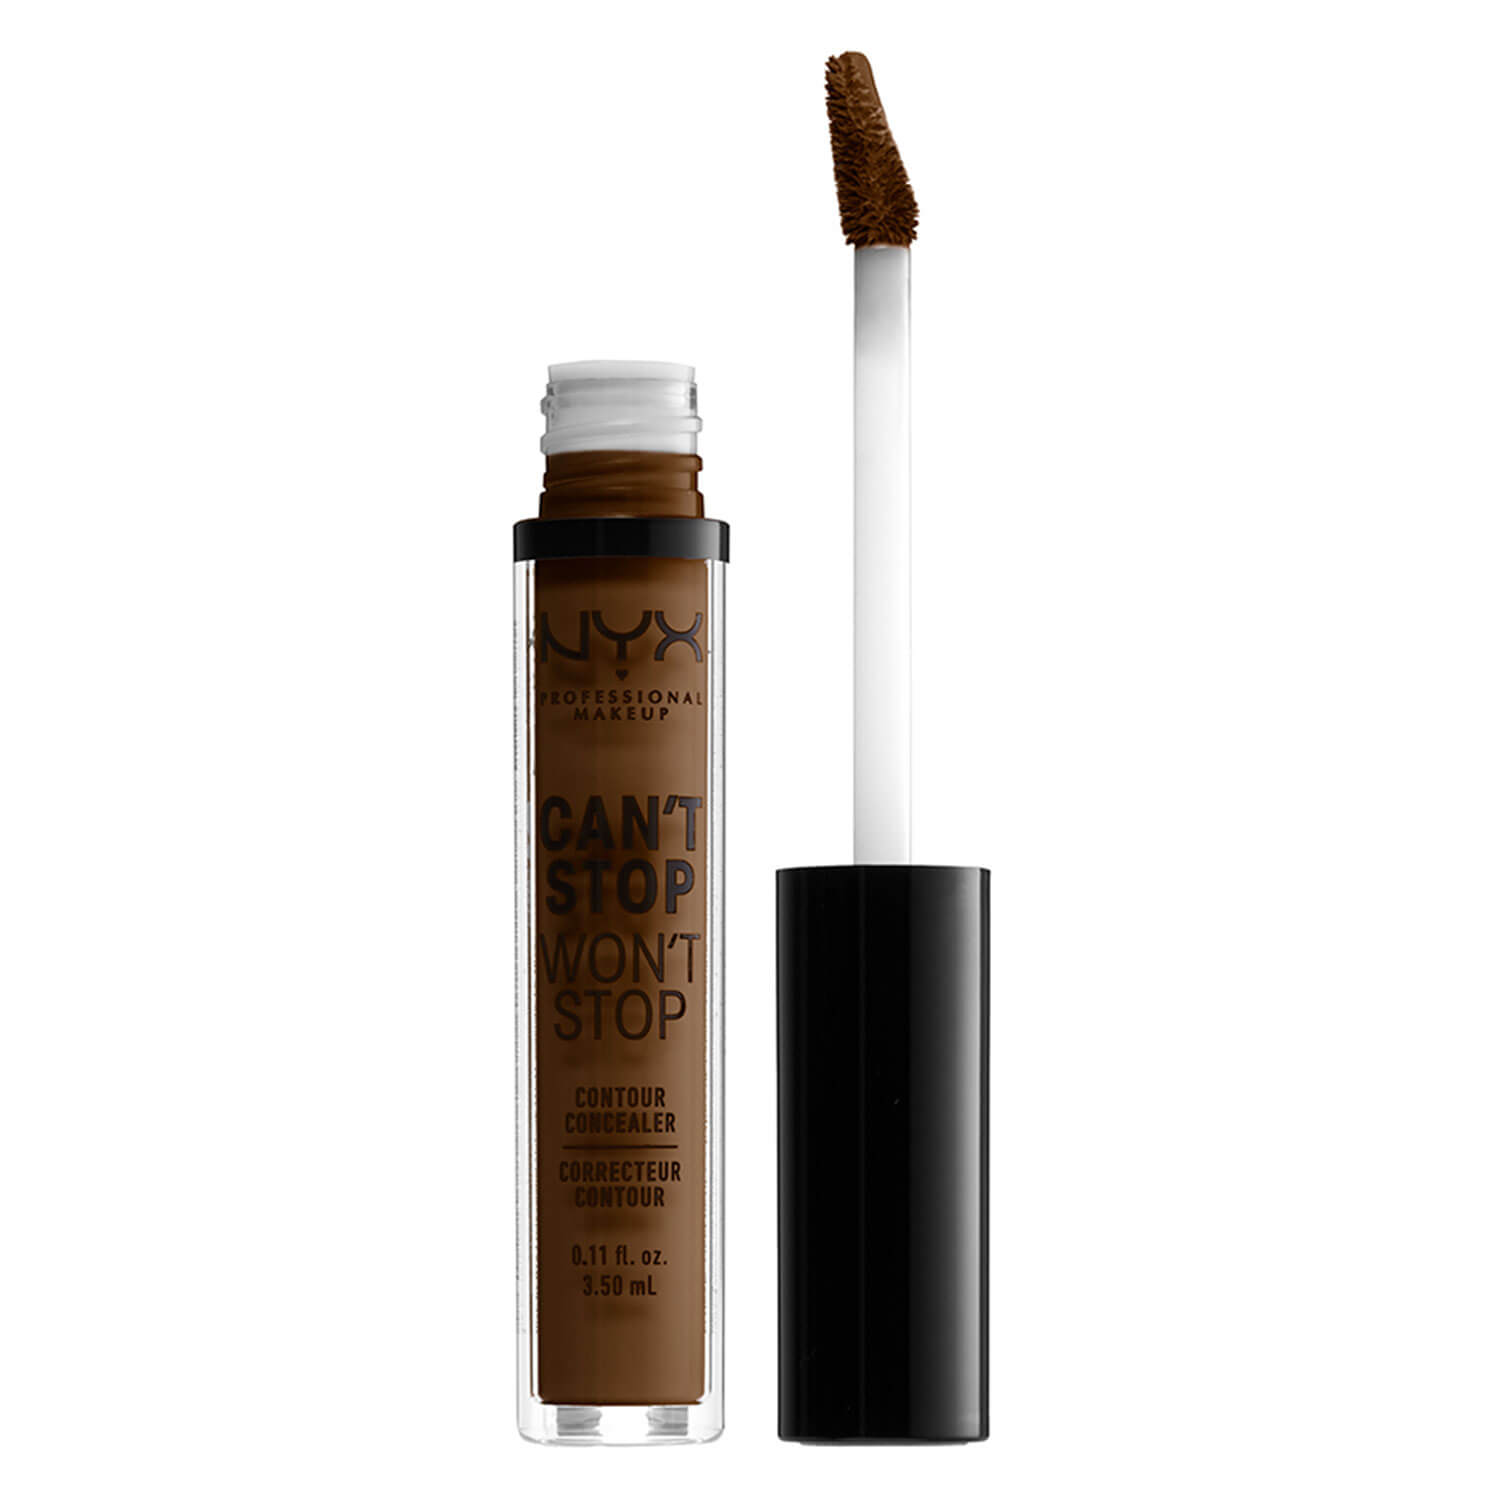 Can't Stop Won't Stop - Contour Concealer Walnut